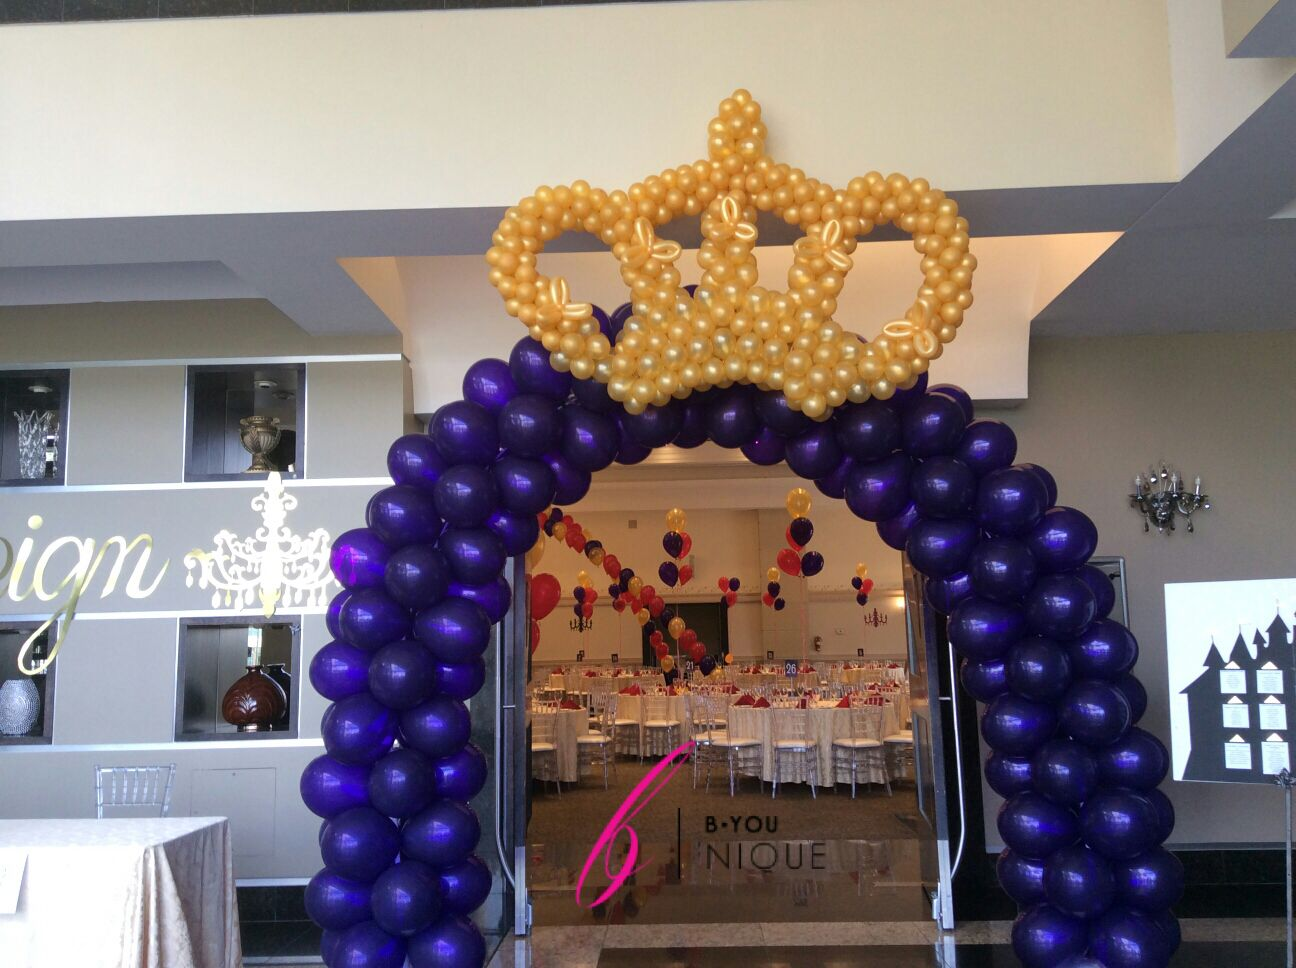 Our balloon crown arch ballooncrown balloonarch